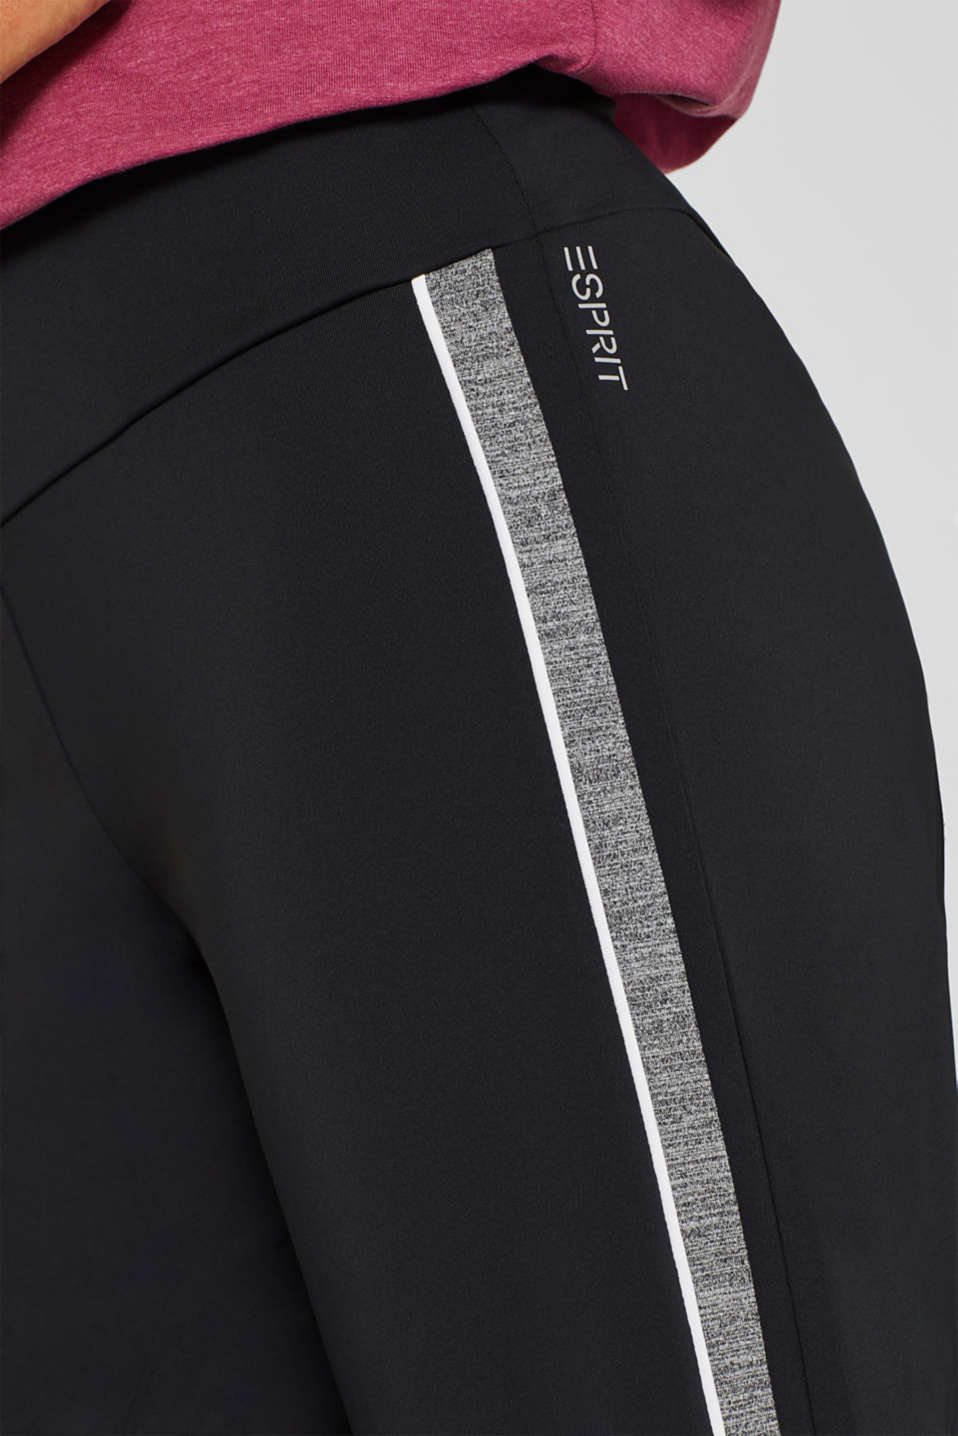 Active tracksuit bottoms with racing stripes, E-DRY, BLACK, detail image number 1